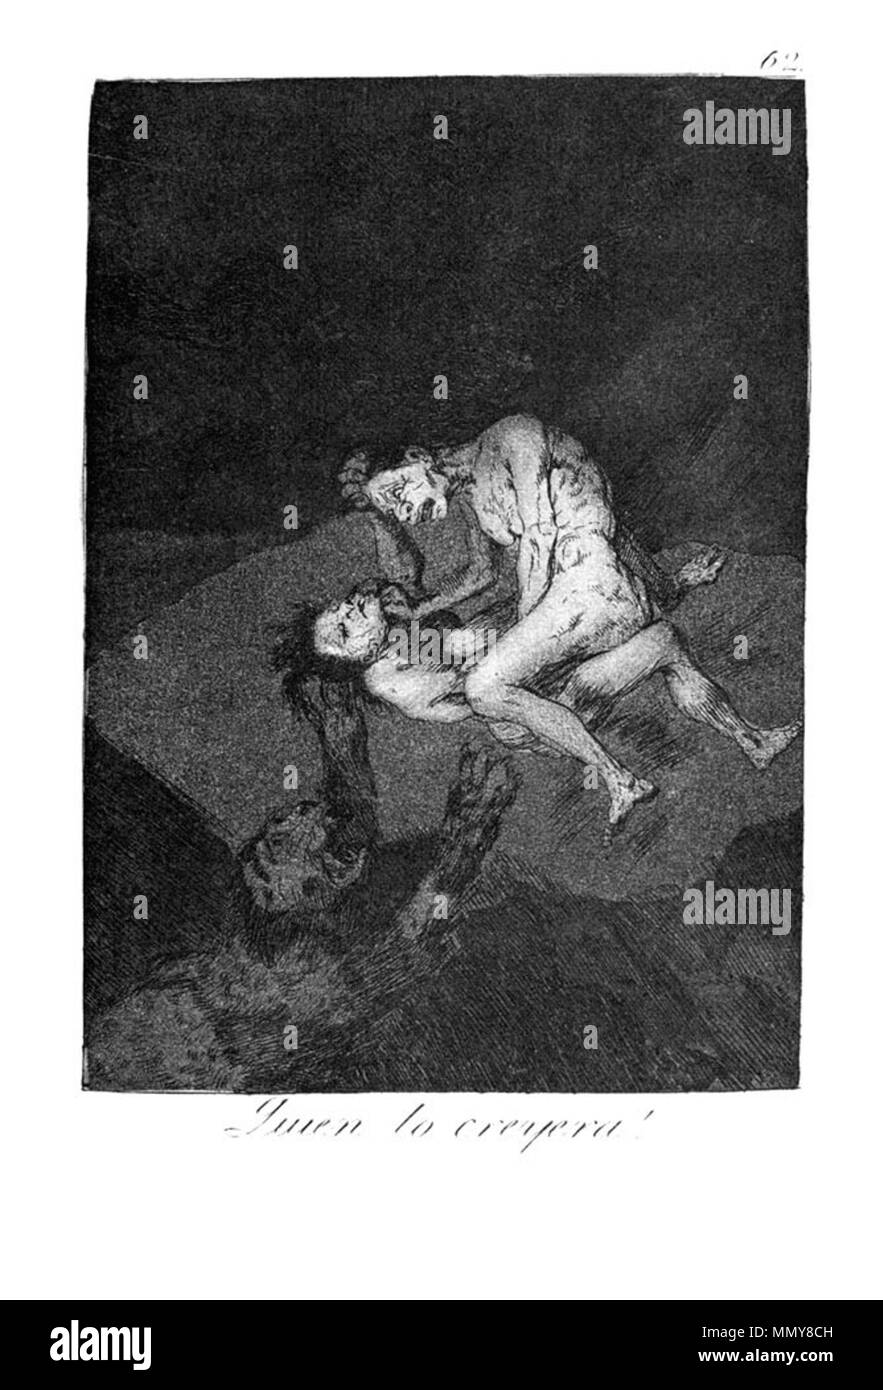 . Los Caprichos is a set of 80 aquatint prints created by Francisco Goya for release in 1799.  . 1799.   Francisco Goya (1746–1828)   Alternative names Francisco Goya Lucientes, Francisco de Goya y Lucientes, Francisco José Goya Lucientes  Description Spanish painter, printmaker, lithographer, engraver and etcher  Date of birth/death 30 March 1746 16 April 1828  Location of birth/death Fuendetodos Bordeaux  Work location Madrid, Zaragoza, Bordeaux  Authority control  : Q5432 VIAF:?54343141 ISNI:?0000 0001 2280 1608 ULAN:?500118936 LCCN:?n79003363 NLA:?36545788 WorldCat Goya - Caprichos (62 - Stock Image